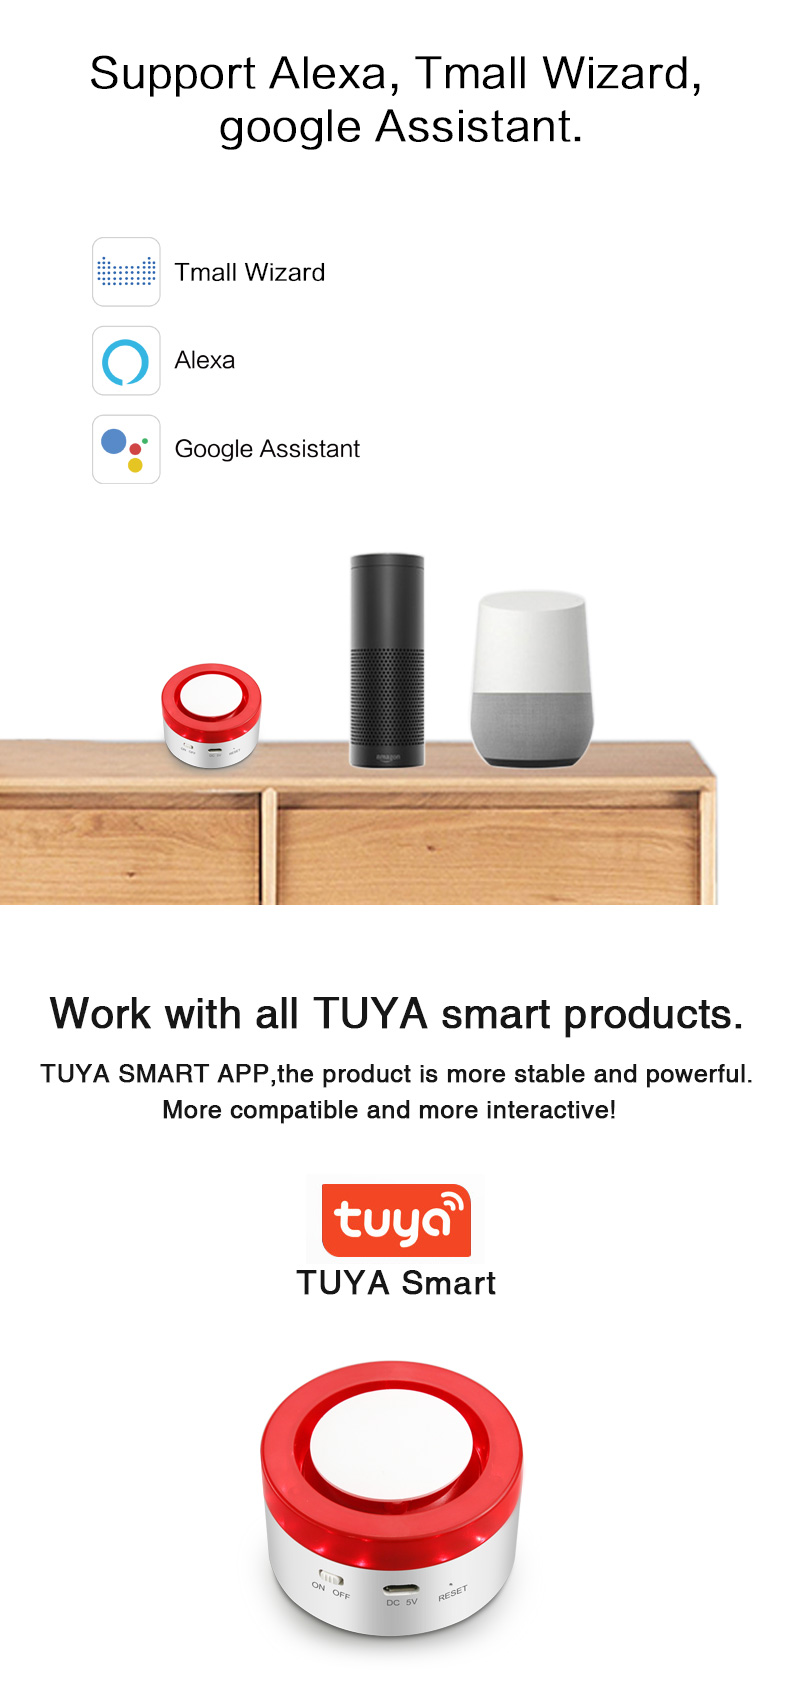 BE-H1 Supports Amazon Alexa, Google Assistant and Tmall Wizard